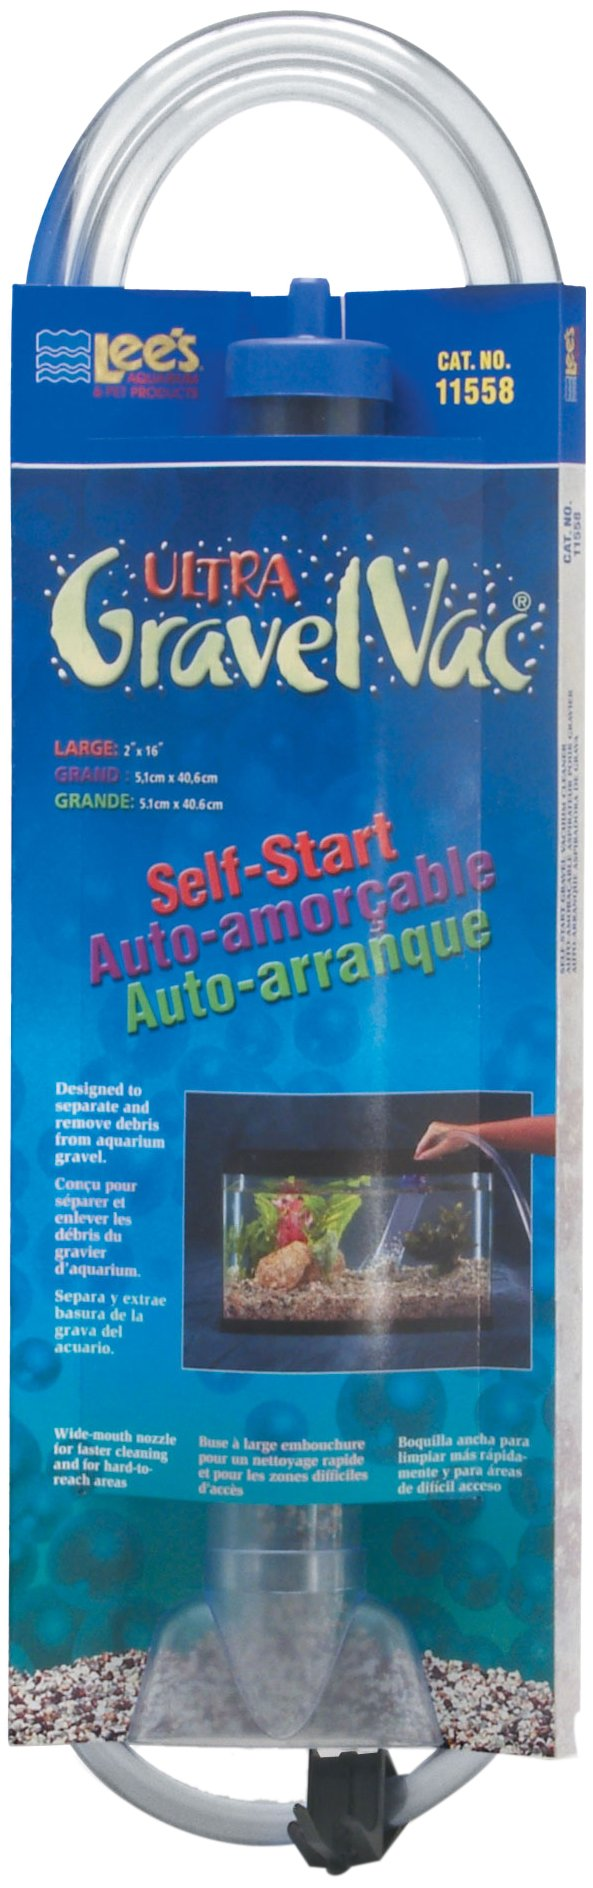 Lee's Ultra GravelVac, Self-Start with Nozzle & Hose Clip - 16'' Large by Lee's